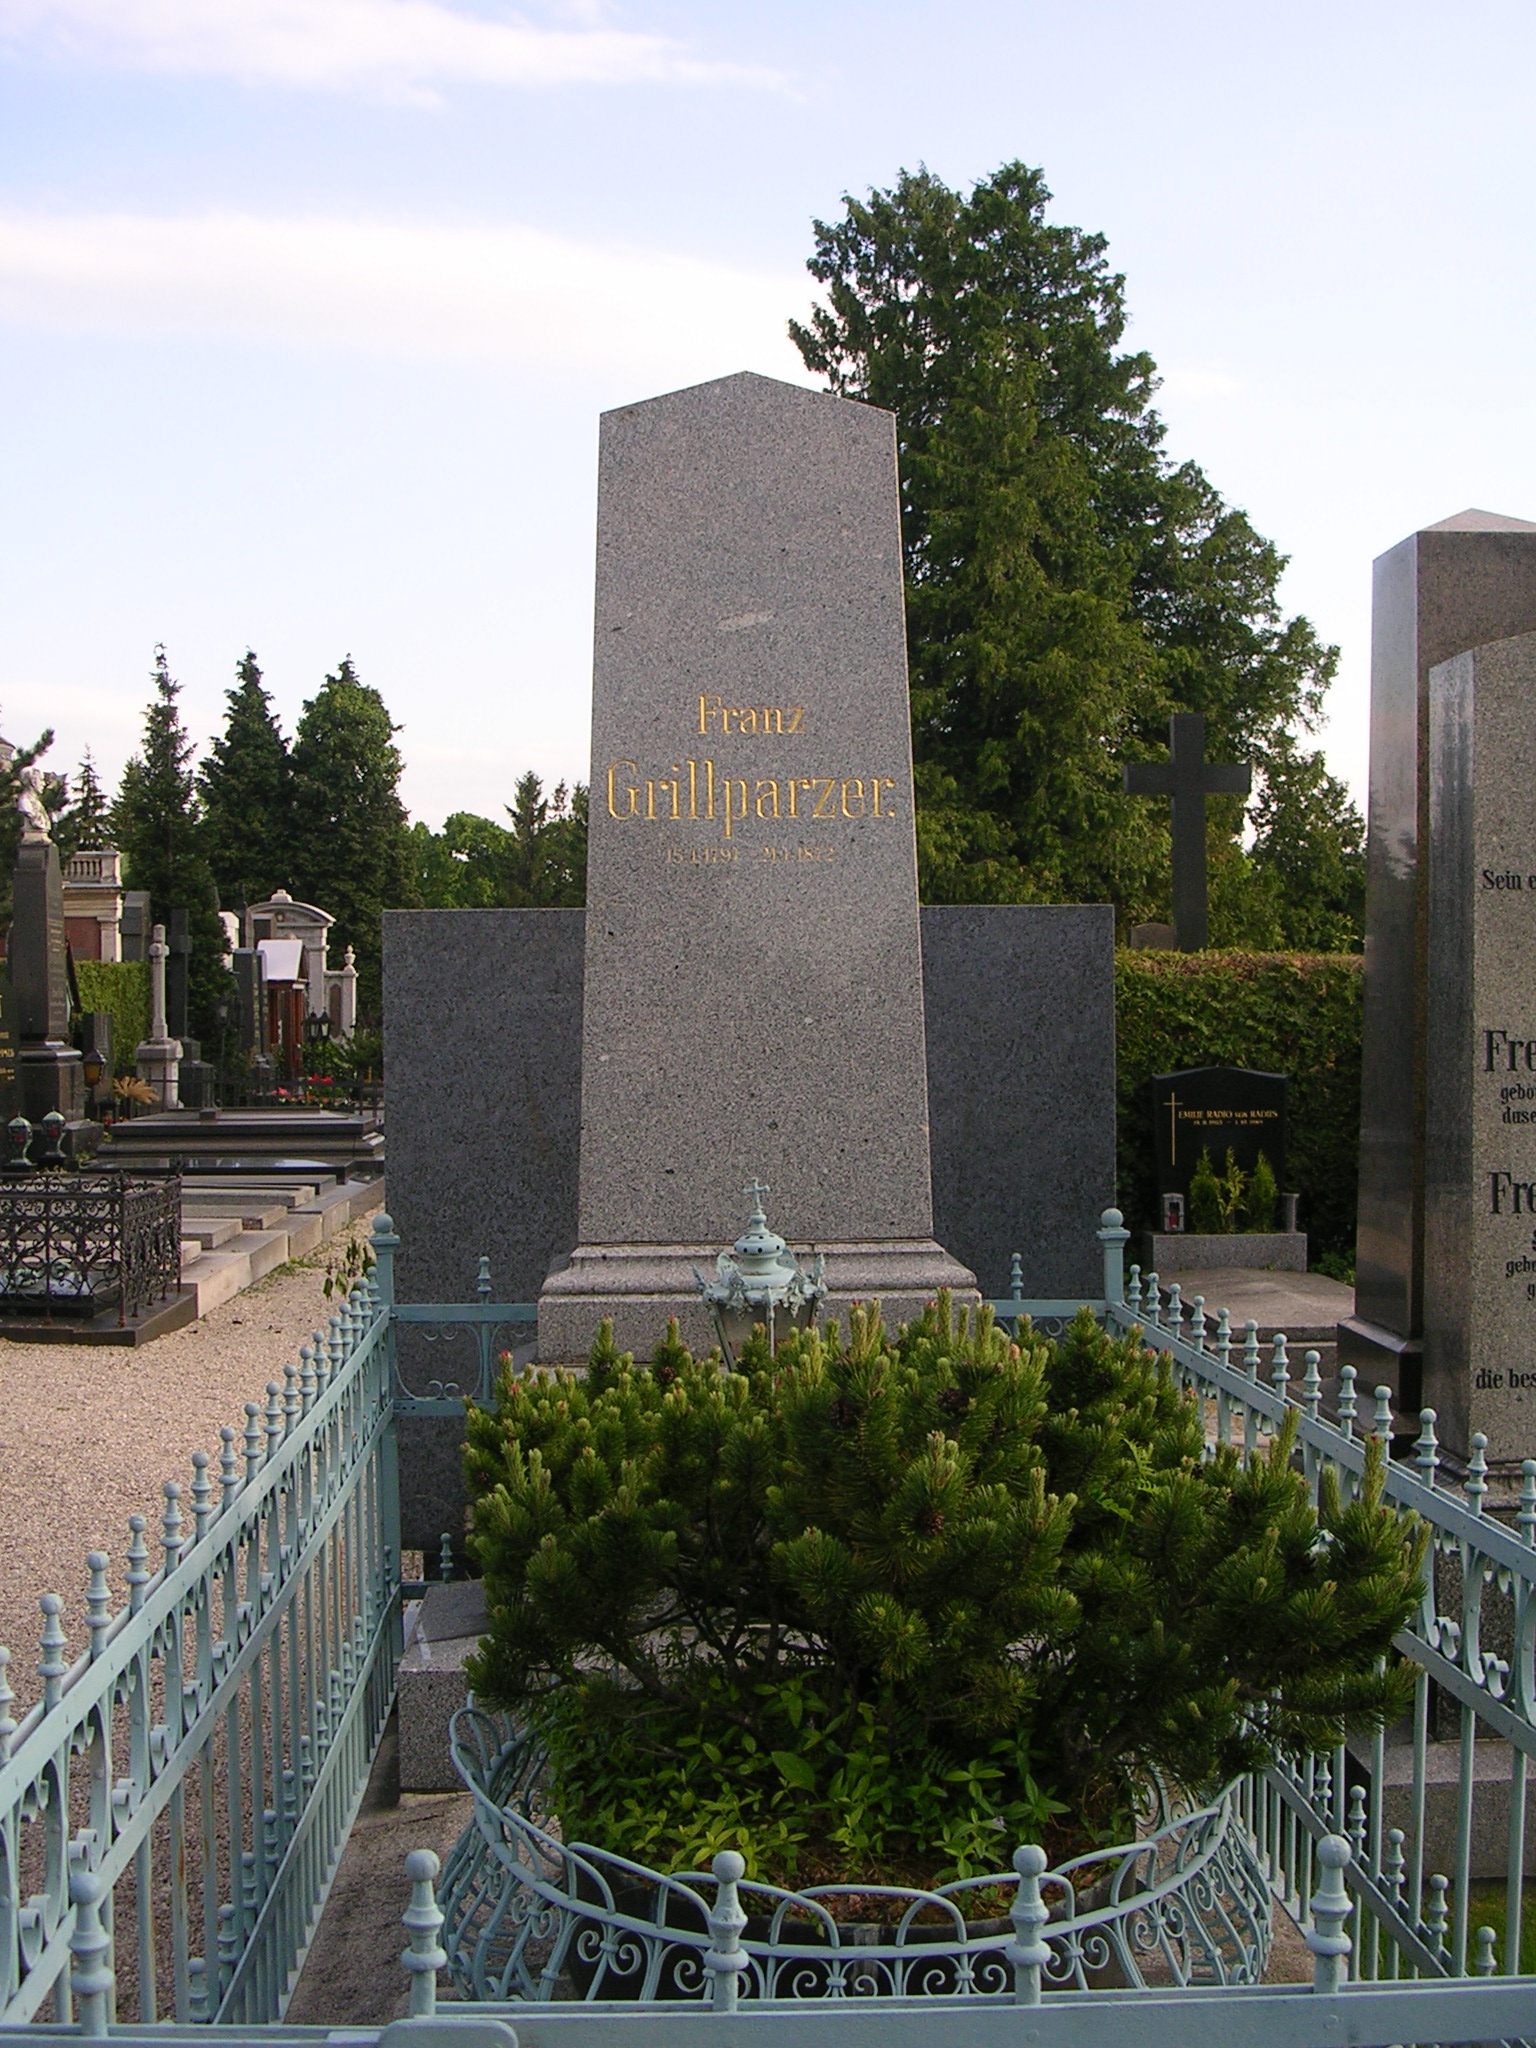 Franz Grillprazer's gravestone at Heitzinger Cemetery in Vienna, Austria. Photo taken by Michael Kranewitter on May 12, 2005.